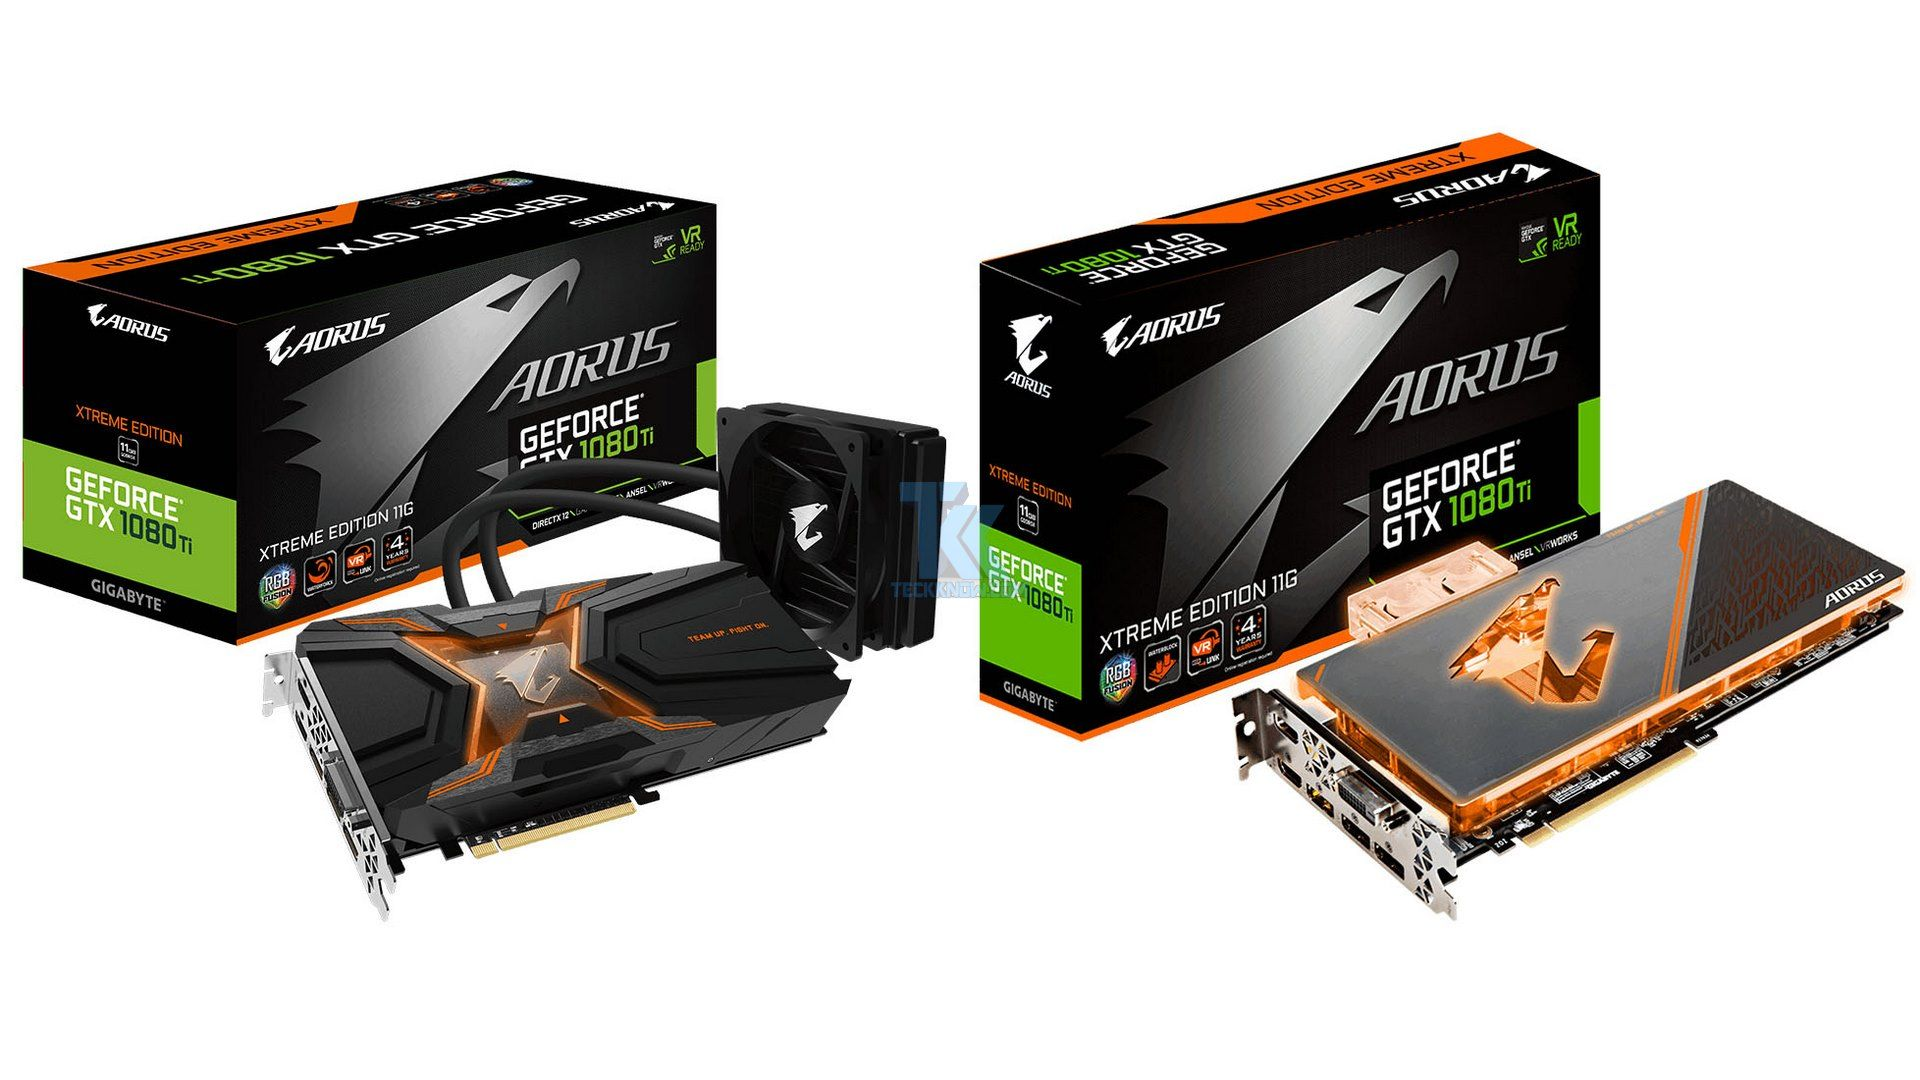 Gigabyte Launches Two Liquid Cooled Geforce Gtx 1080 Ti Graphics Cards From Aorus Graphic Card Gigabyte Cool Stuff